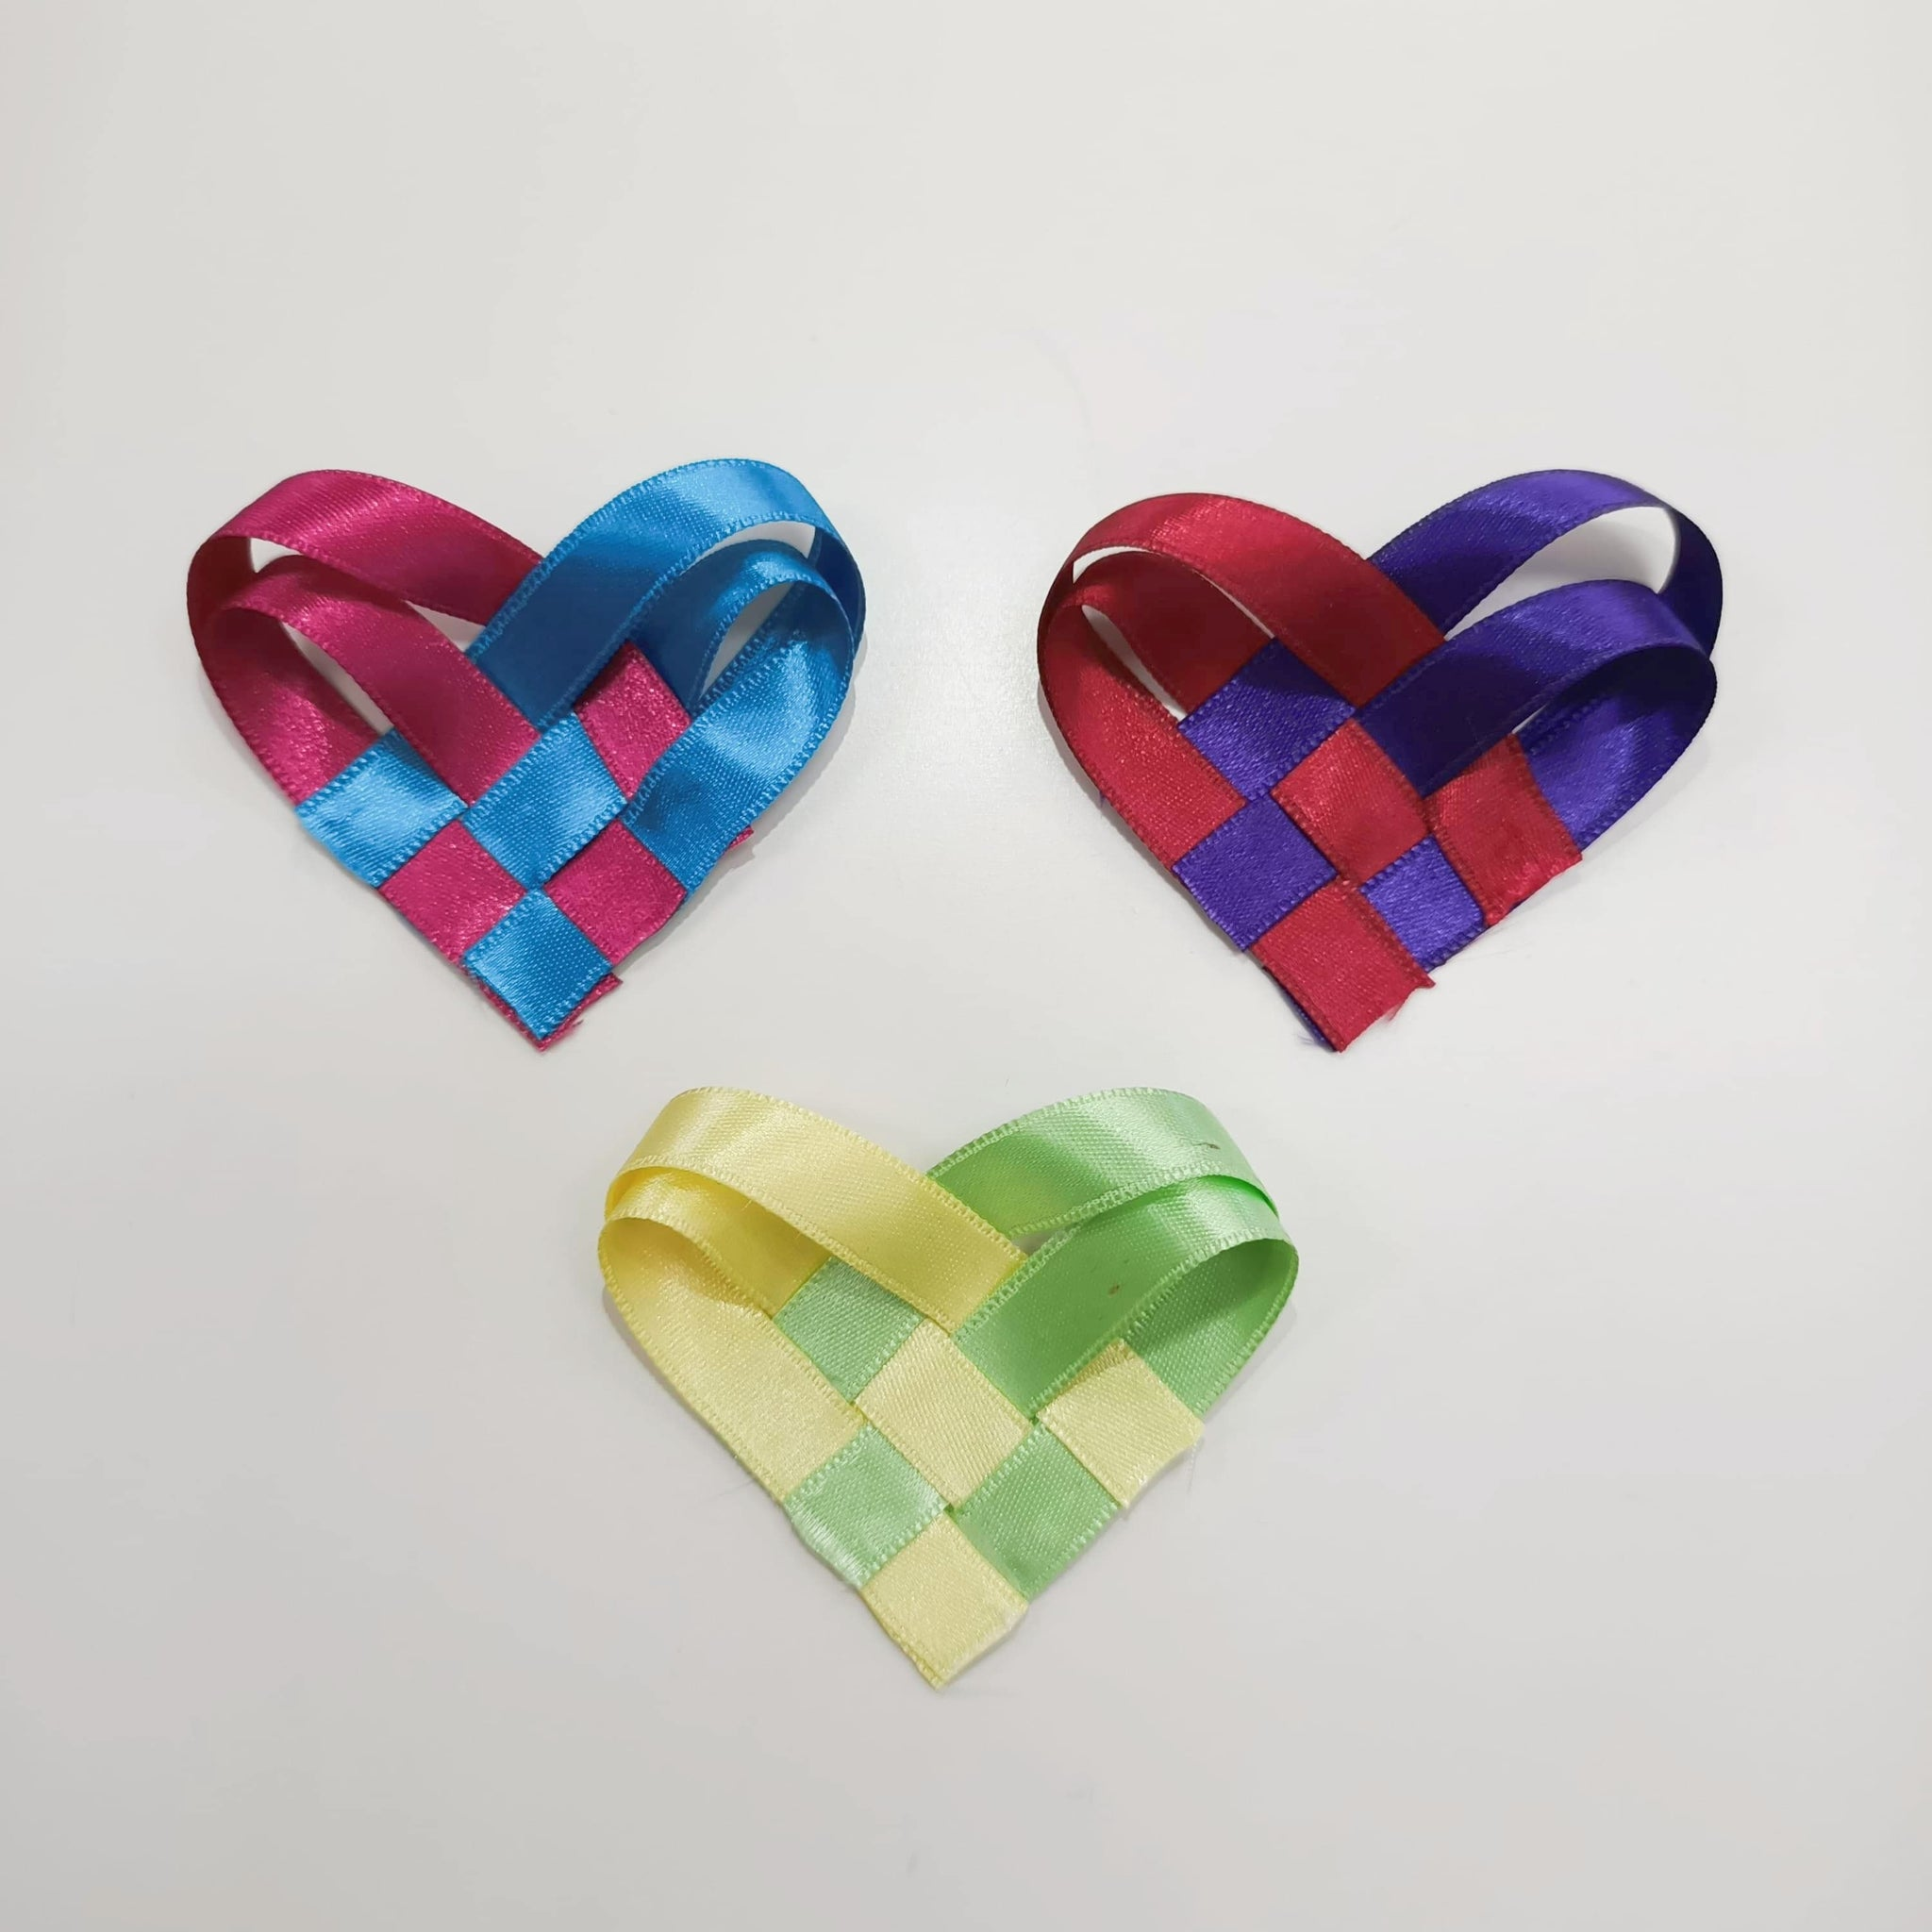 Woven Heart Ribbon Valentines Day Craft DIY